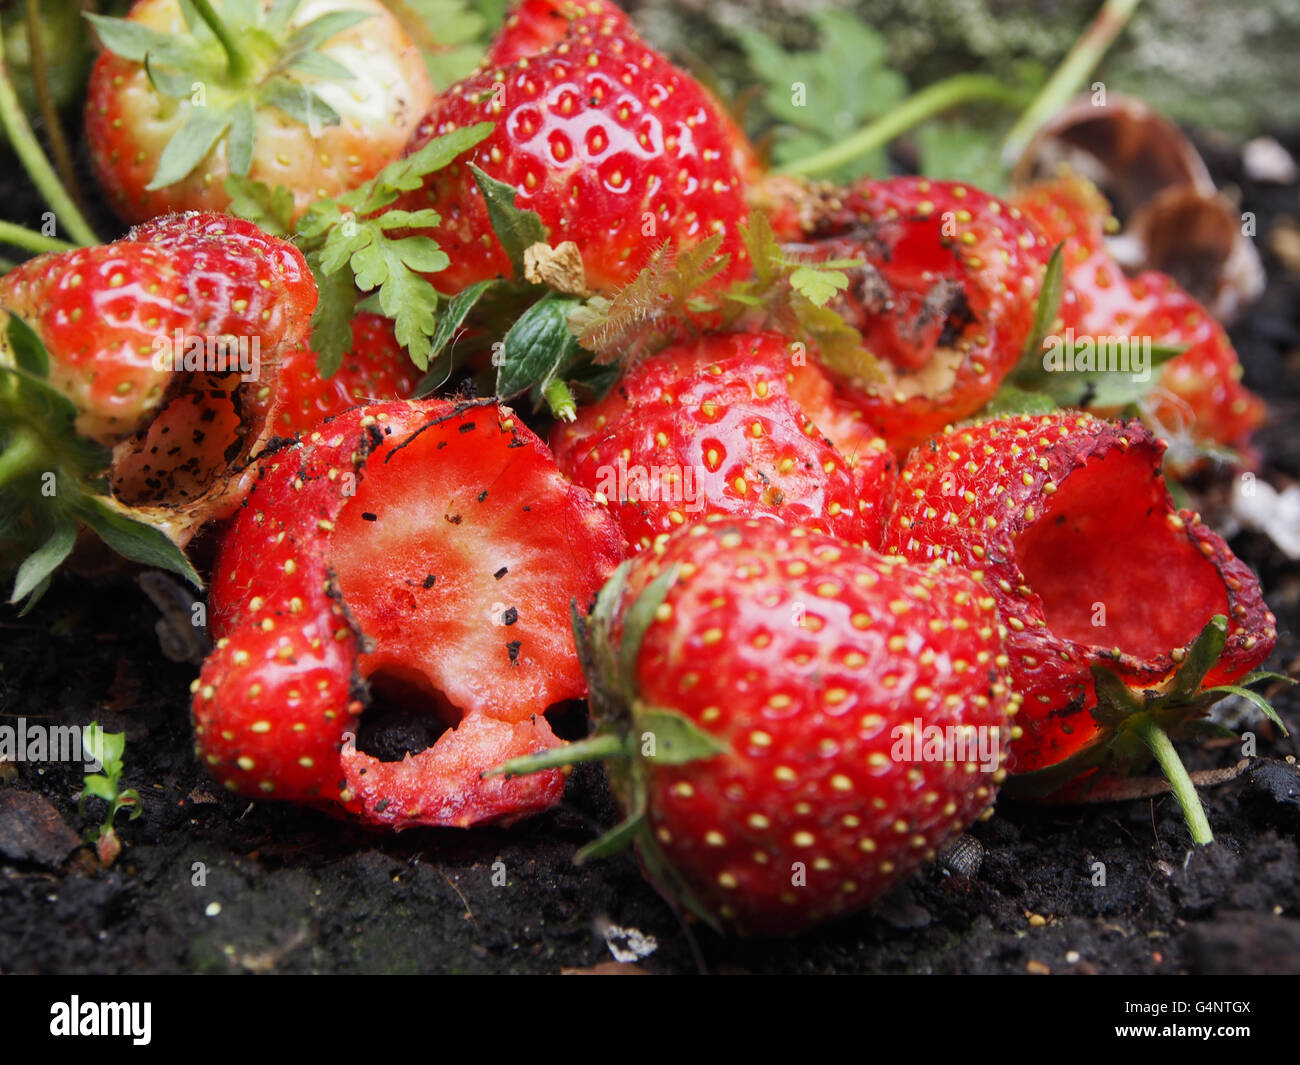 ruined-garden-strawberries-eaten-by-pests-G4NTGX.jpg